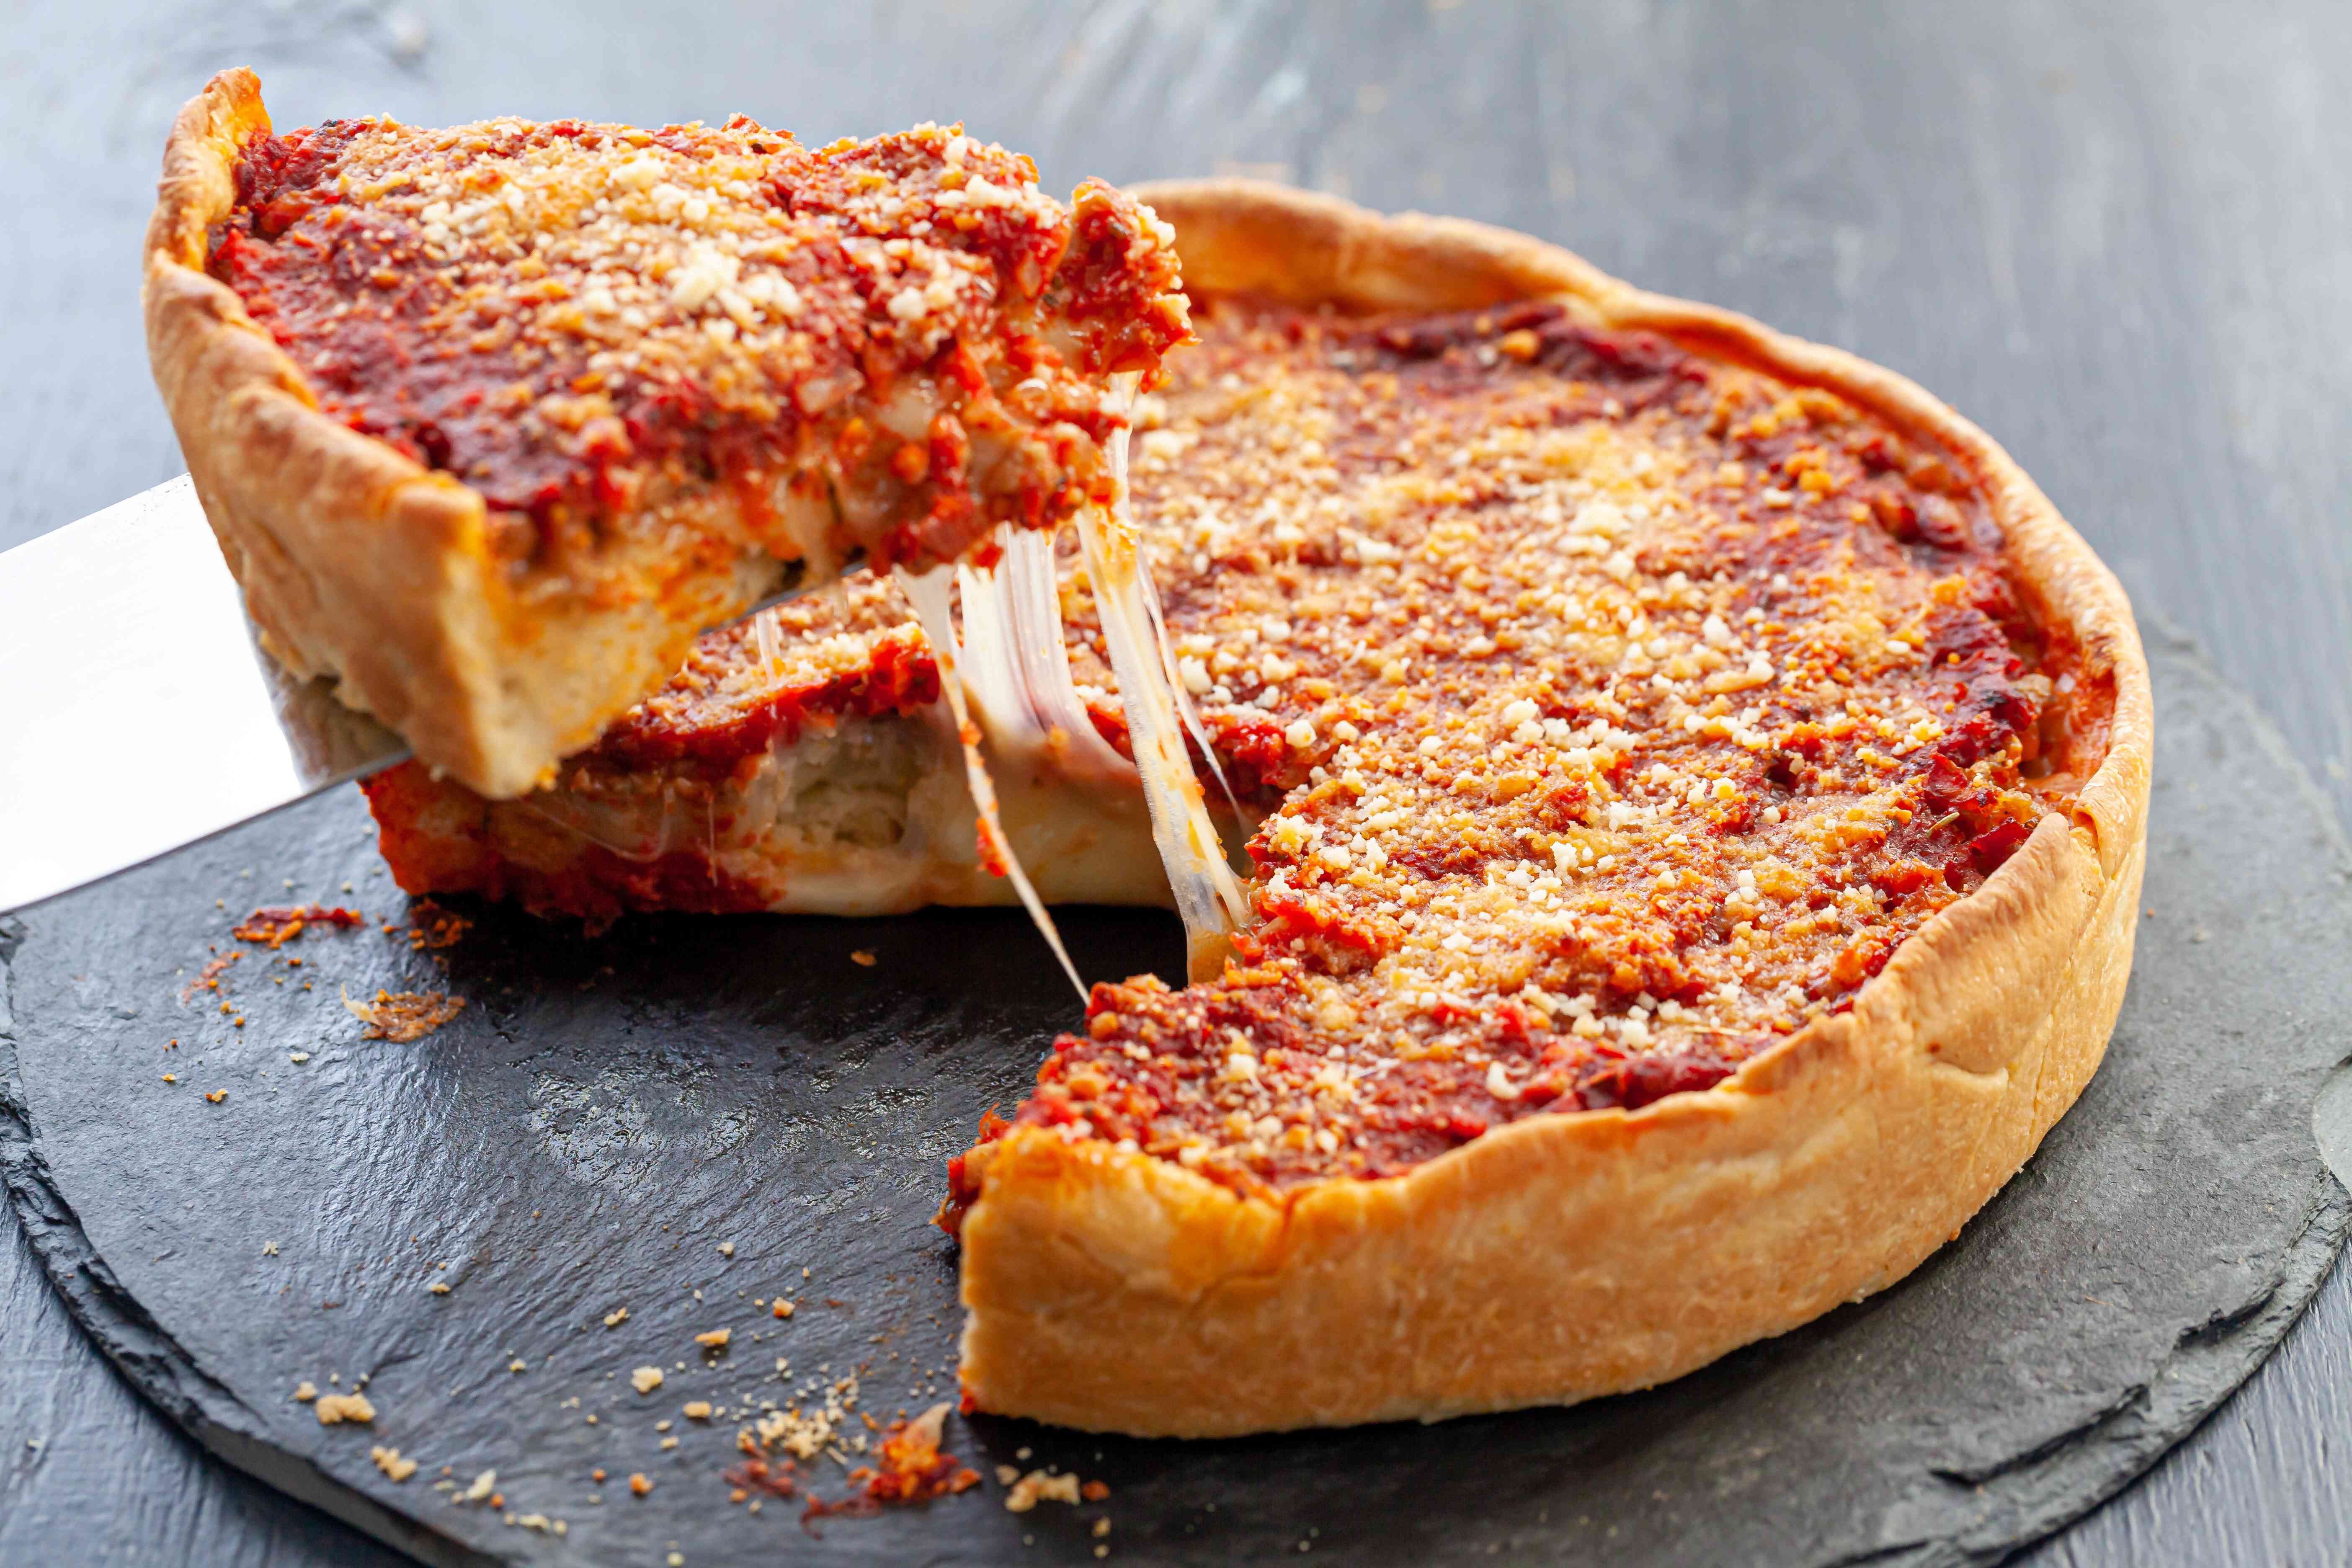 A slice being lifted up from an Italian Sausage Deep Dish Pizza.